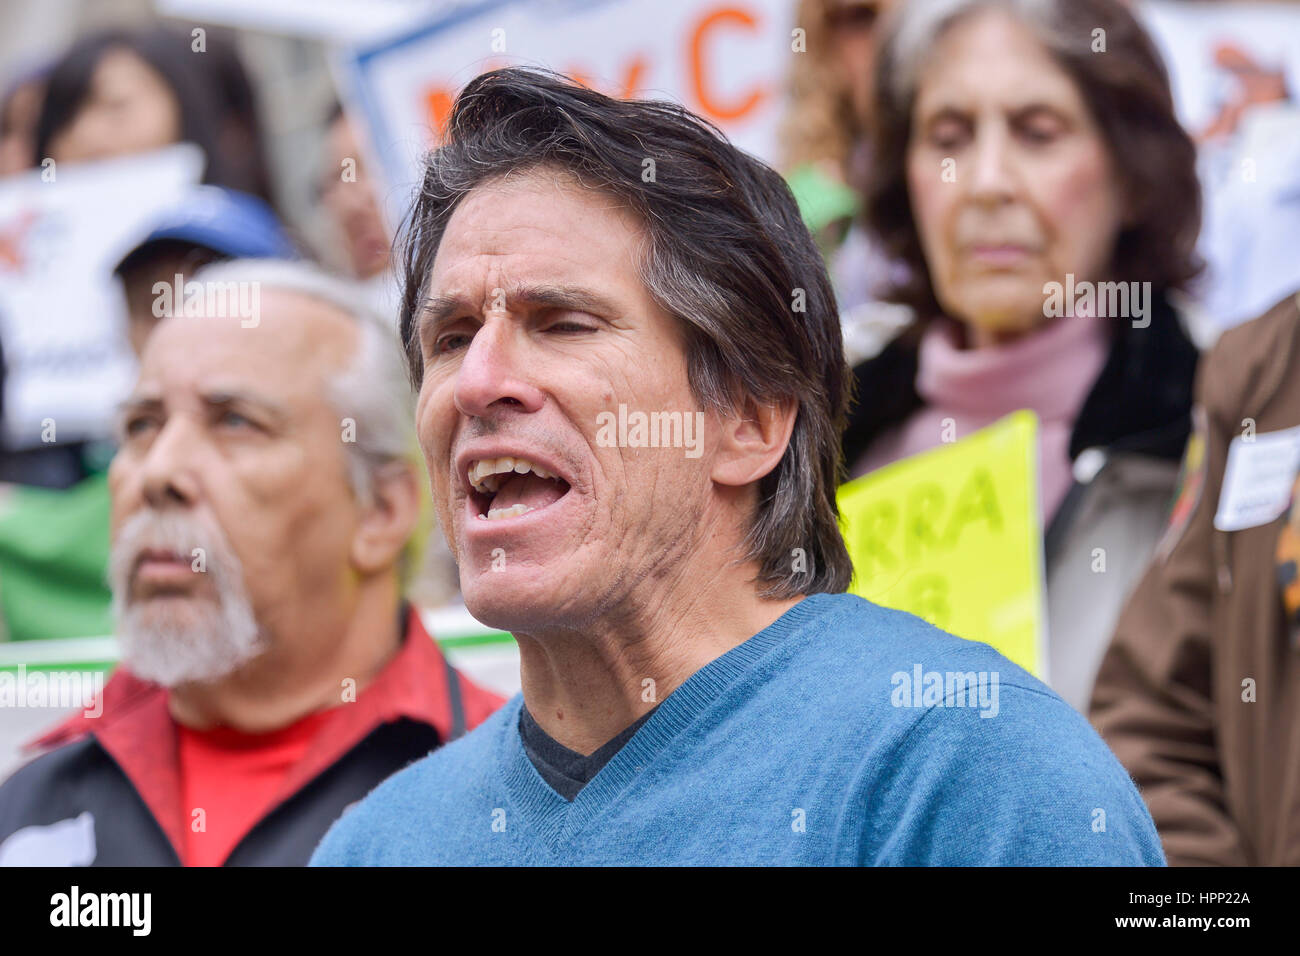 New York, United States. 23rd Feb, 2017. Rick Chavolla of the American Indian Communtiy House speaks at the rally. - Stock Image